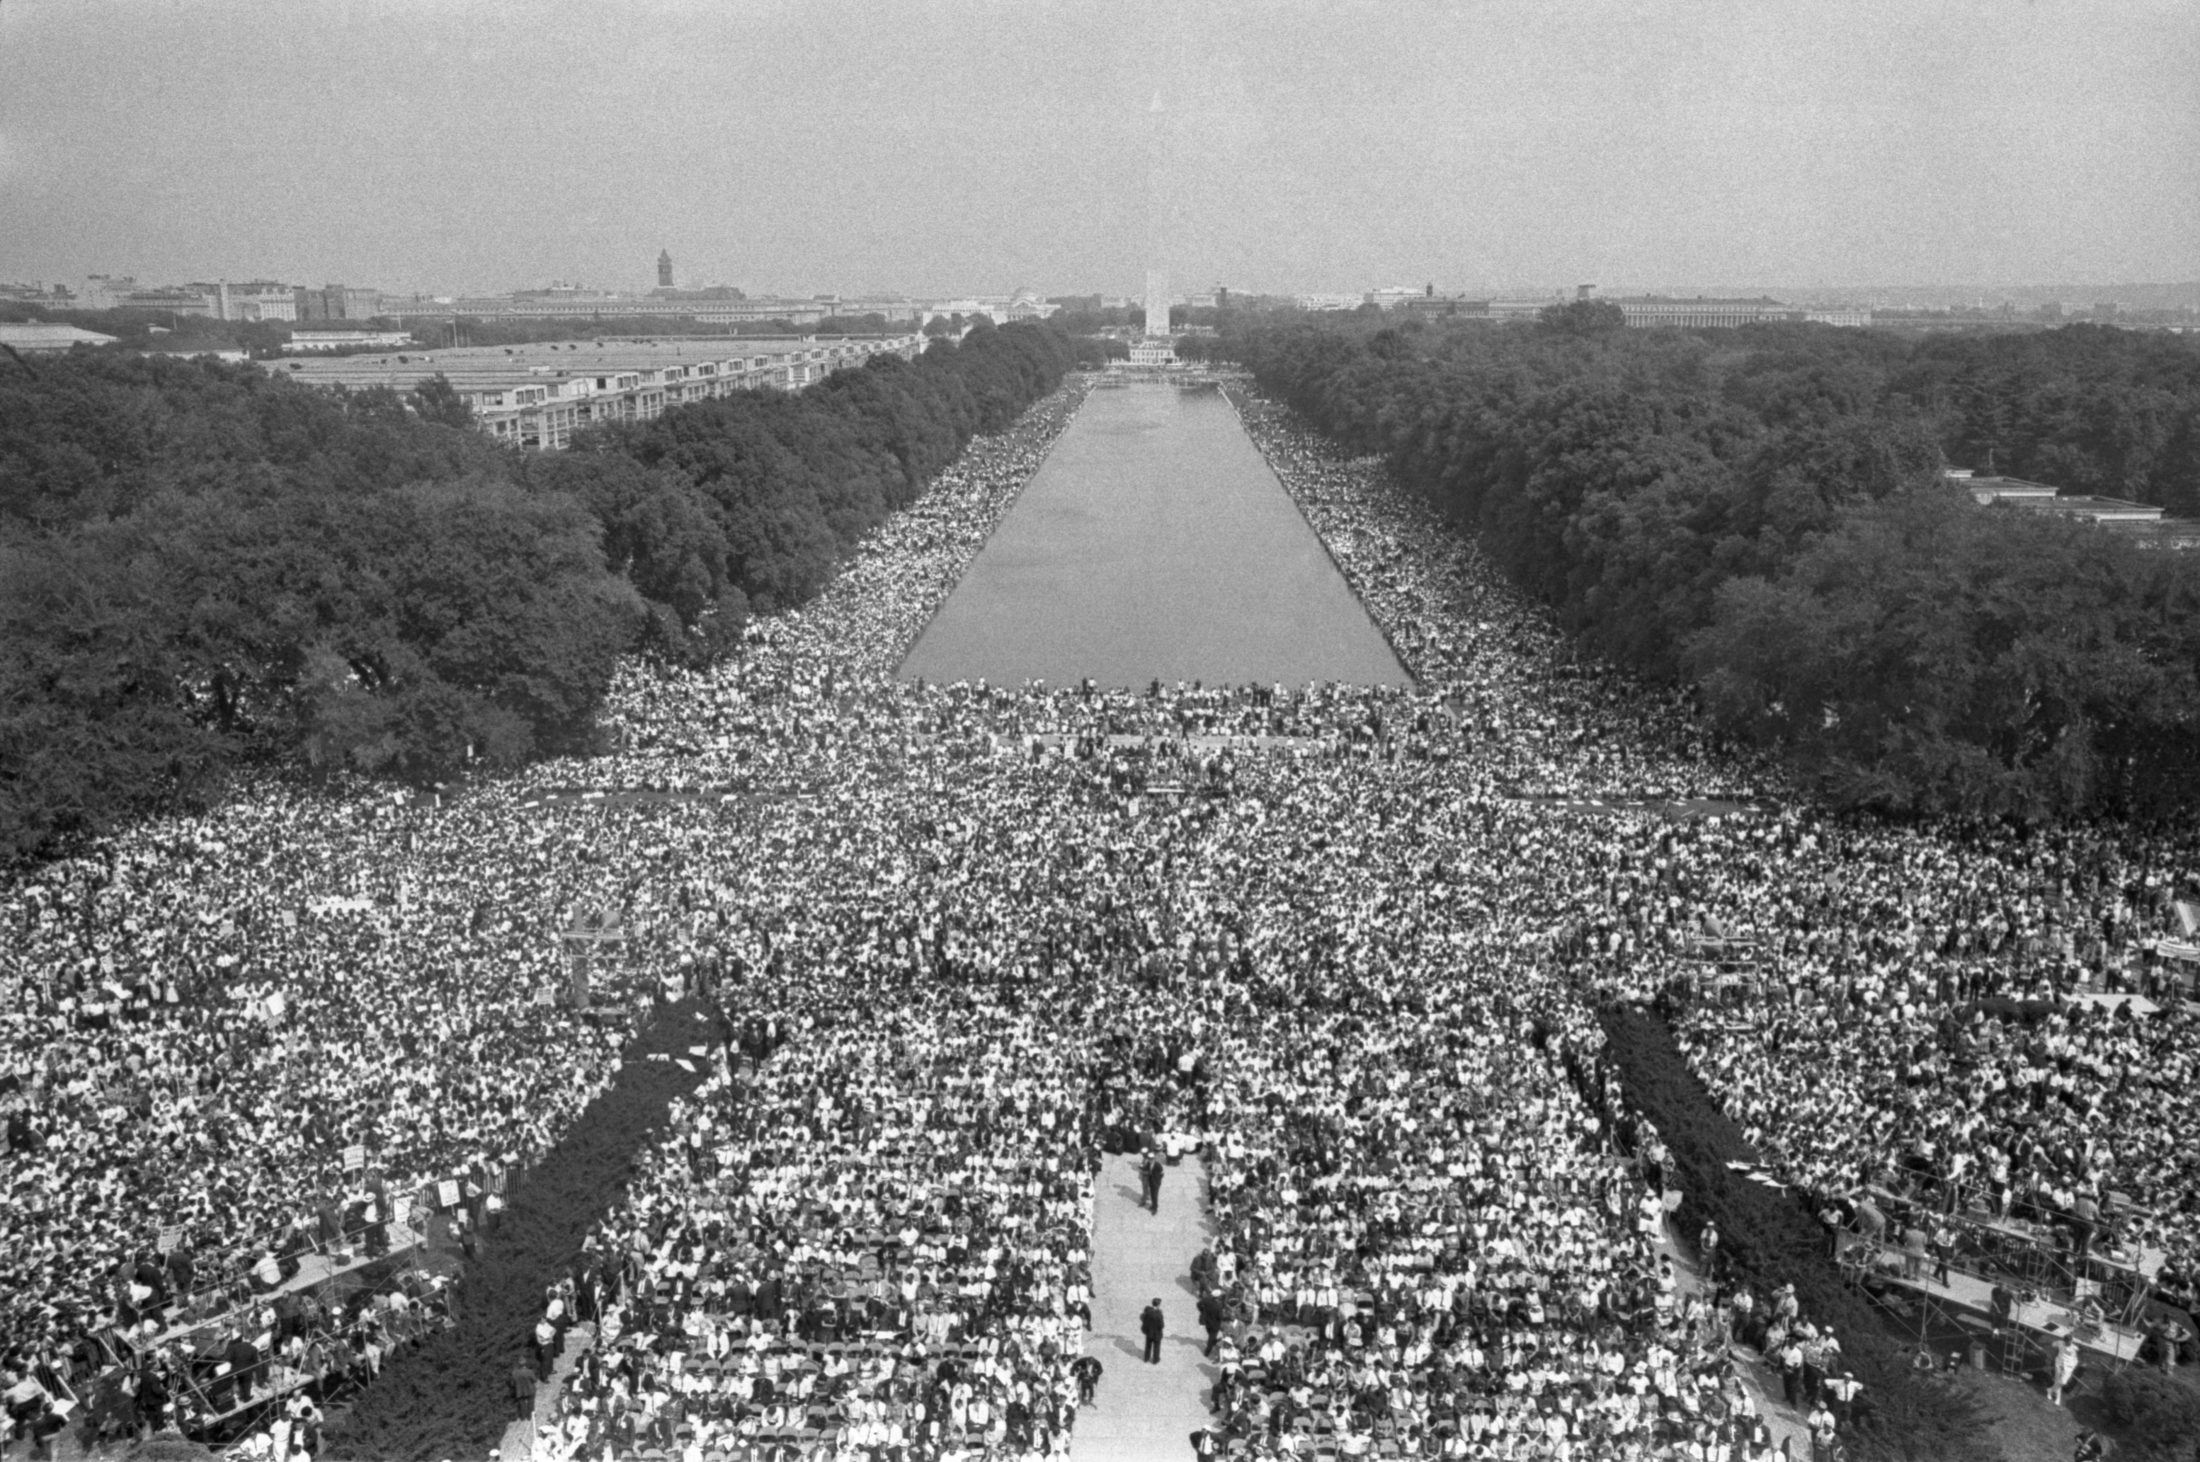 This photo, taken from the top of Lincoln Memorial, shows how March on Washington participants jammed the area in front of the memorial and on either side of the Reflecting Pool. Photo by Getty Images